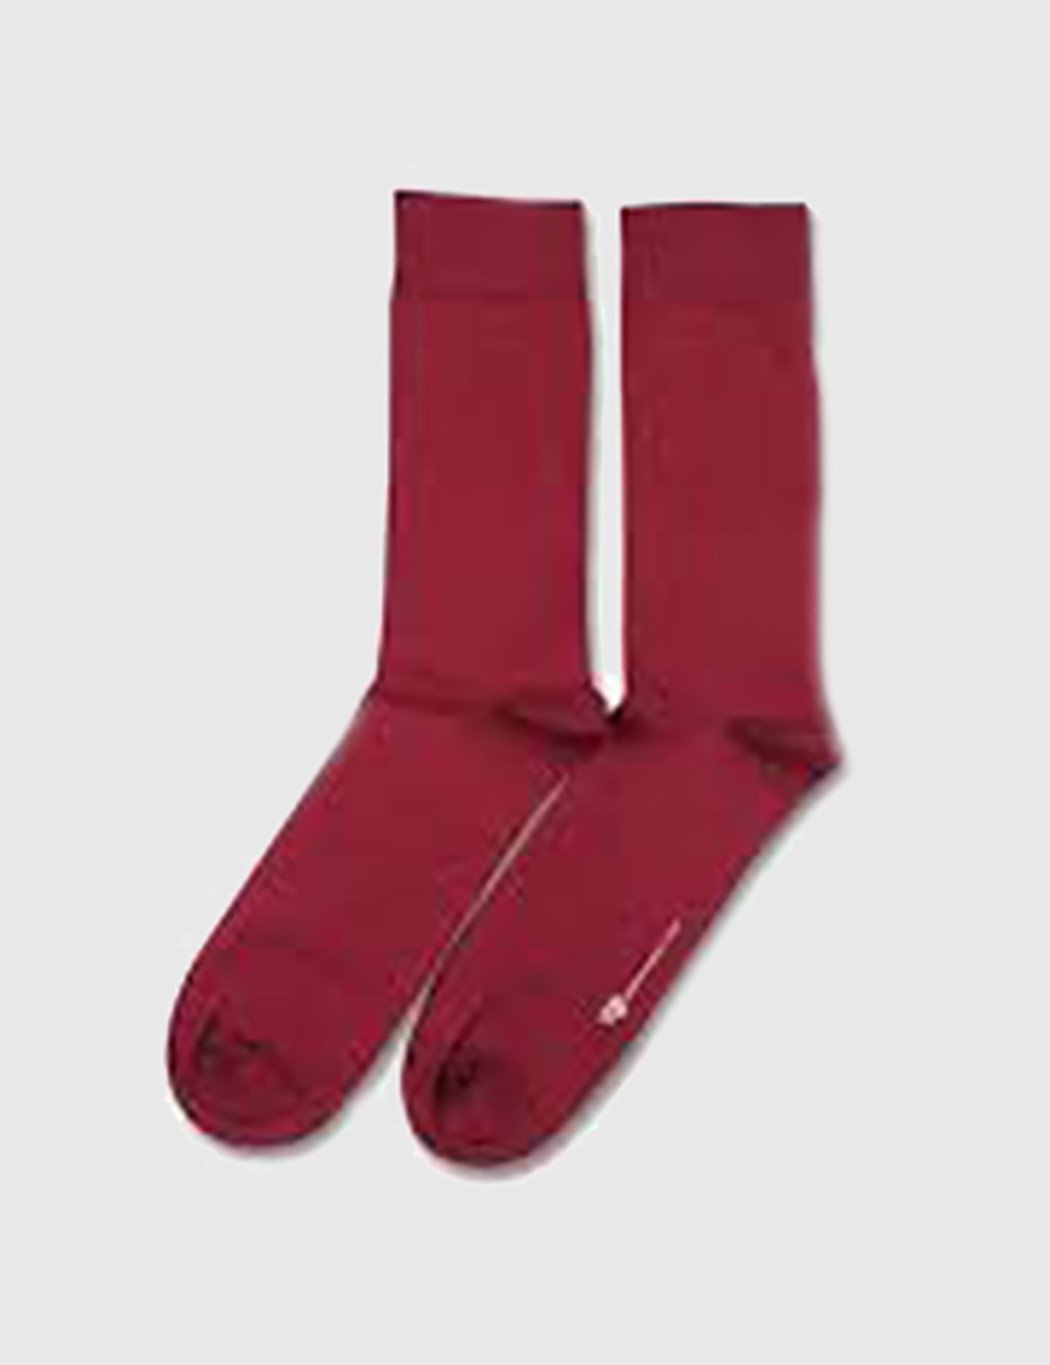 Democratique Solid Socks - Red Wine